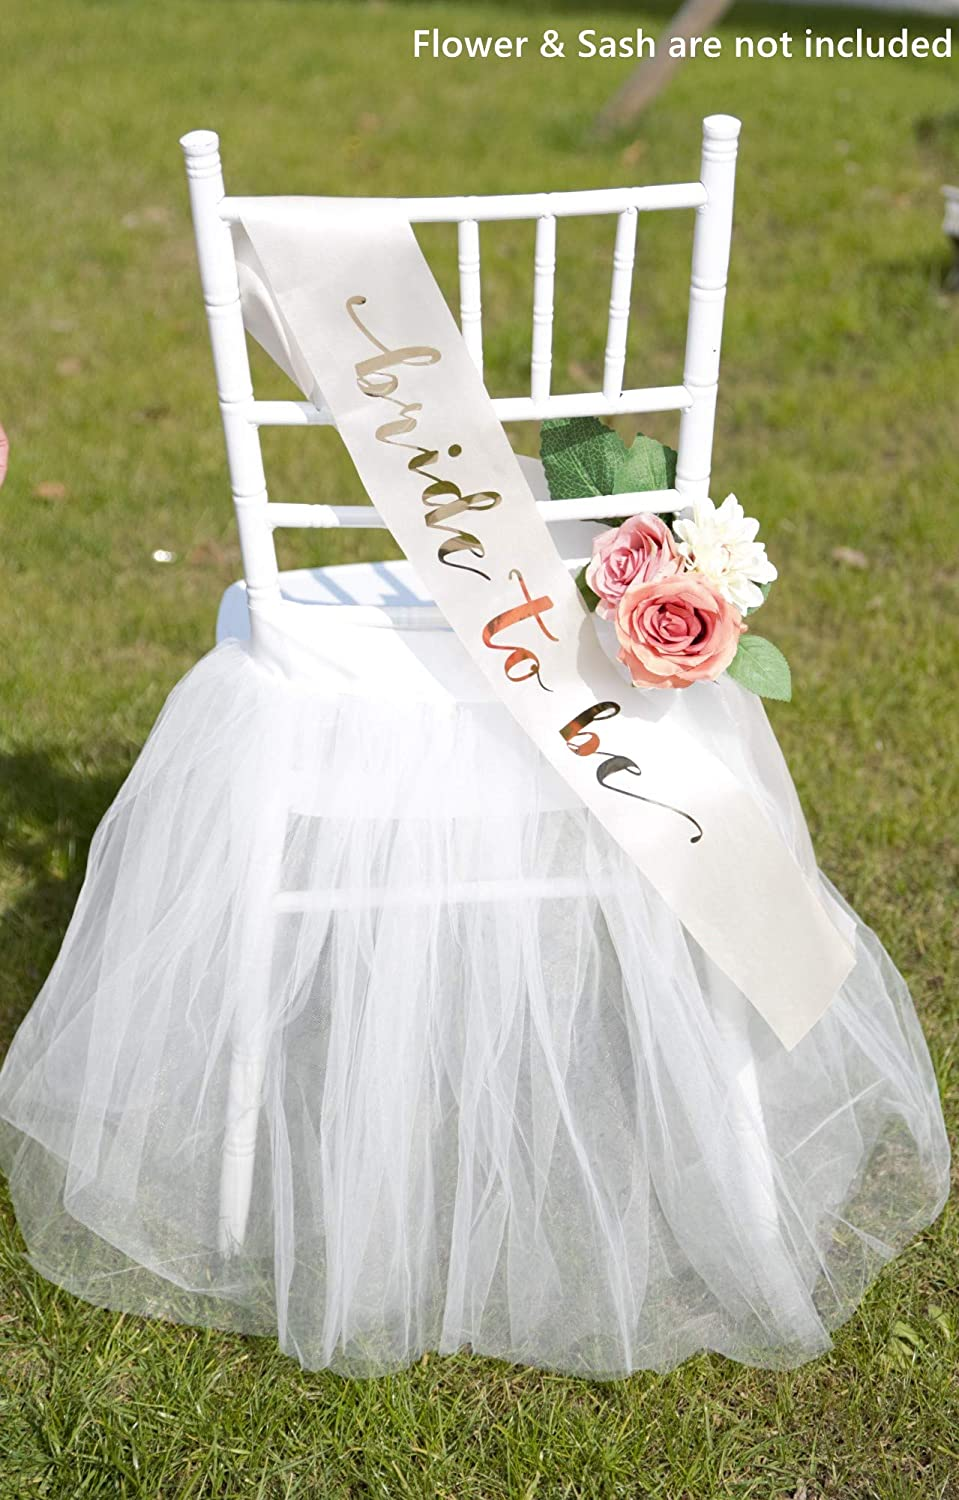 """UNIQOOO Chair Tulle Tutu Decoration for Bridal Shower   Birthday Party, Veil Fluffy Look in White Color - Great for Wedding, Baby Shower – Party Accessory Supplies, 20"""" x 20"""" - Fit Standard Chair"""